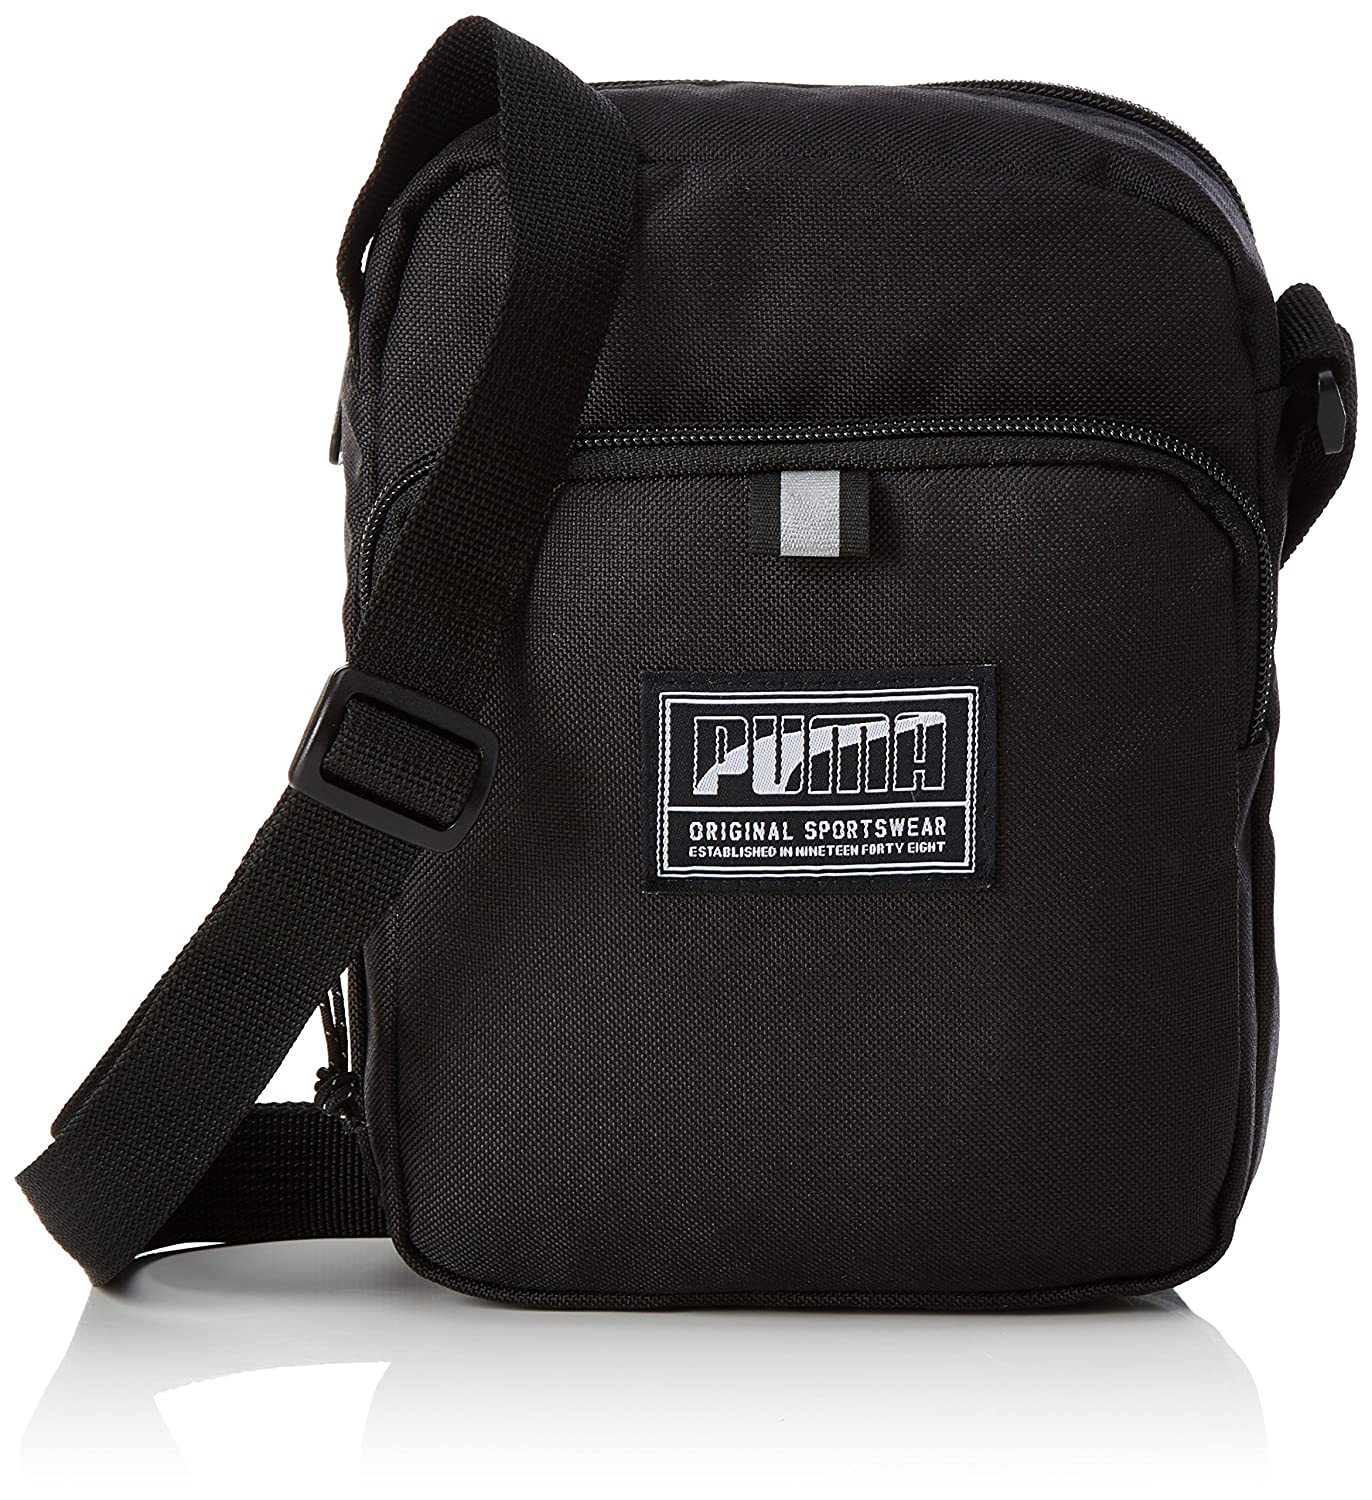 Puma Academy Portable Shoulder Bag d59bdbf036ccf